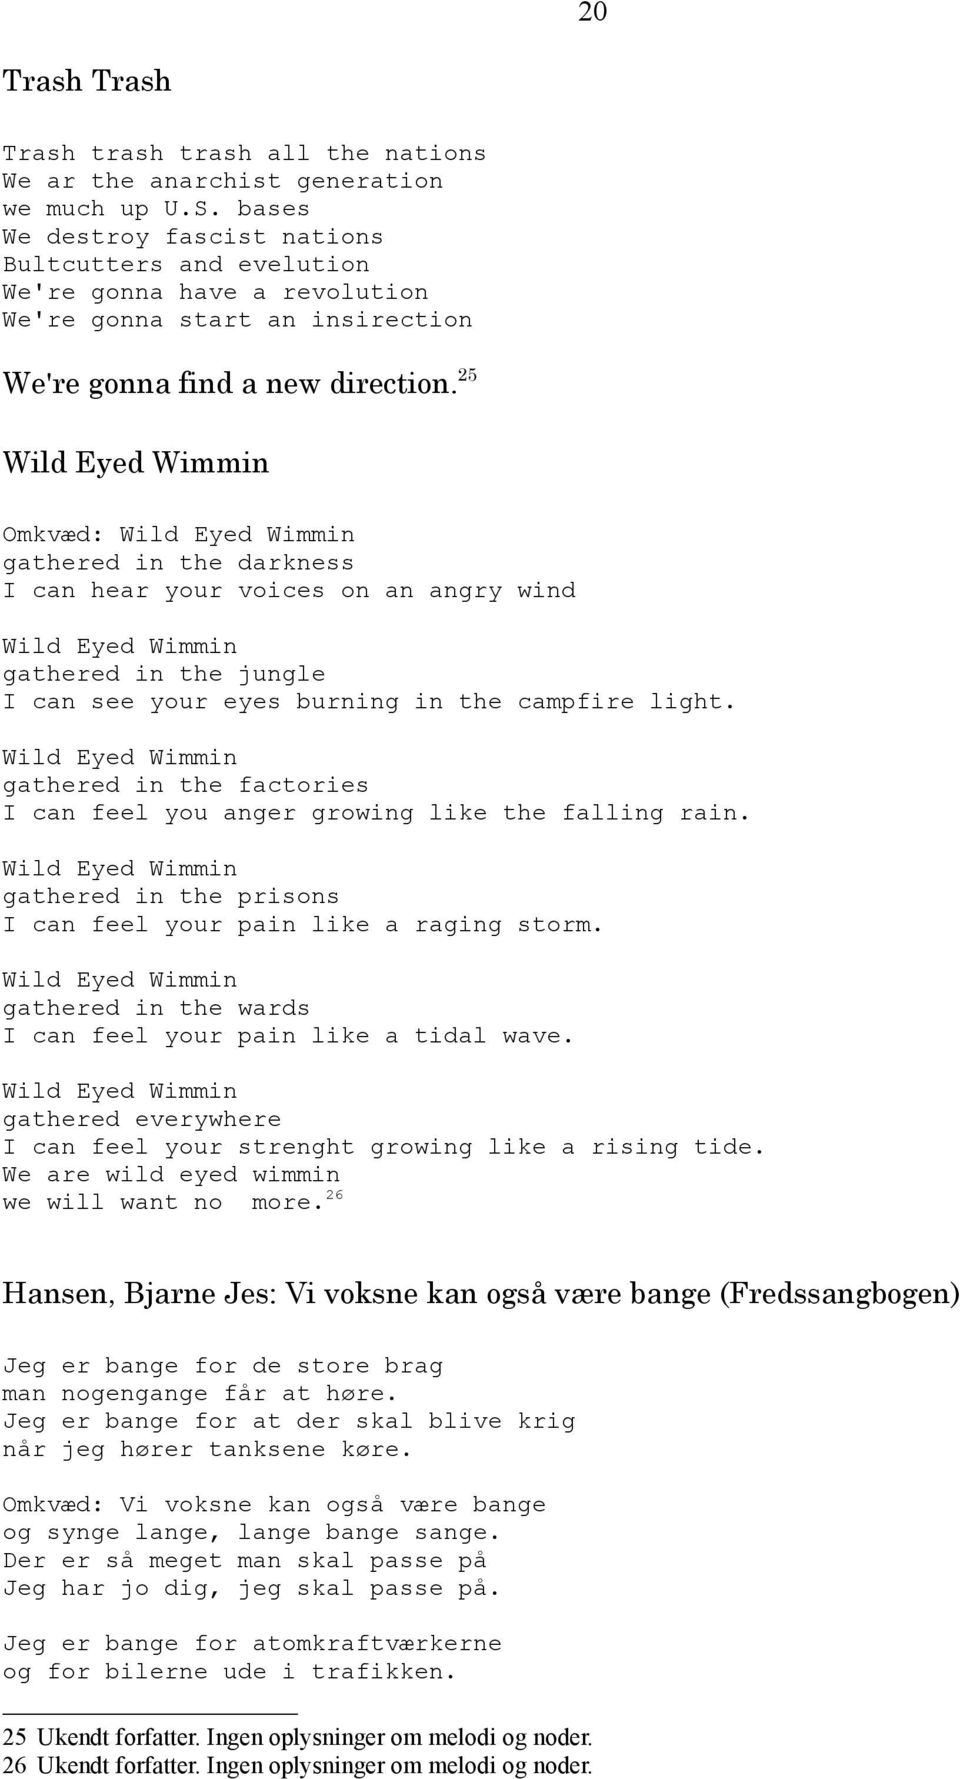 25 Wild Eyed Wimmin Omkvæd: Wild Eyed Wimmin gathered in the darkness I can hear your voices on an angry wind Wild Eyed Wimmin gathered in the jungle I can see your eyes burning in the campfire light.